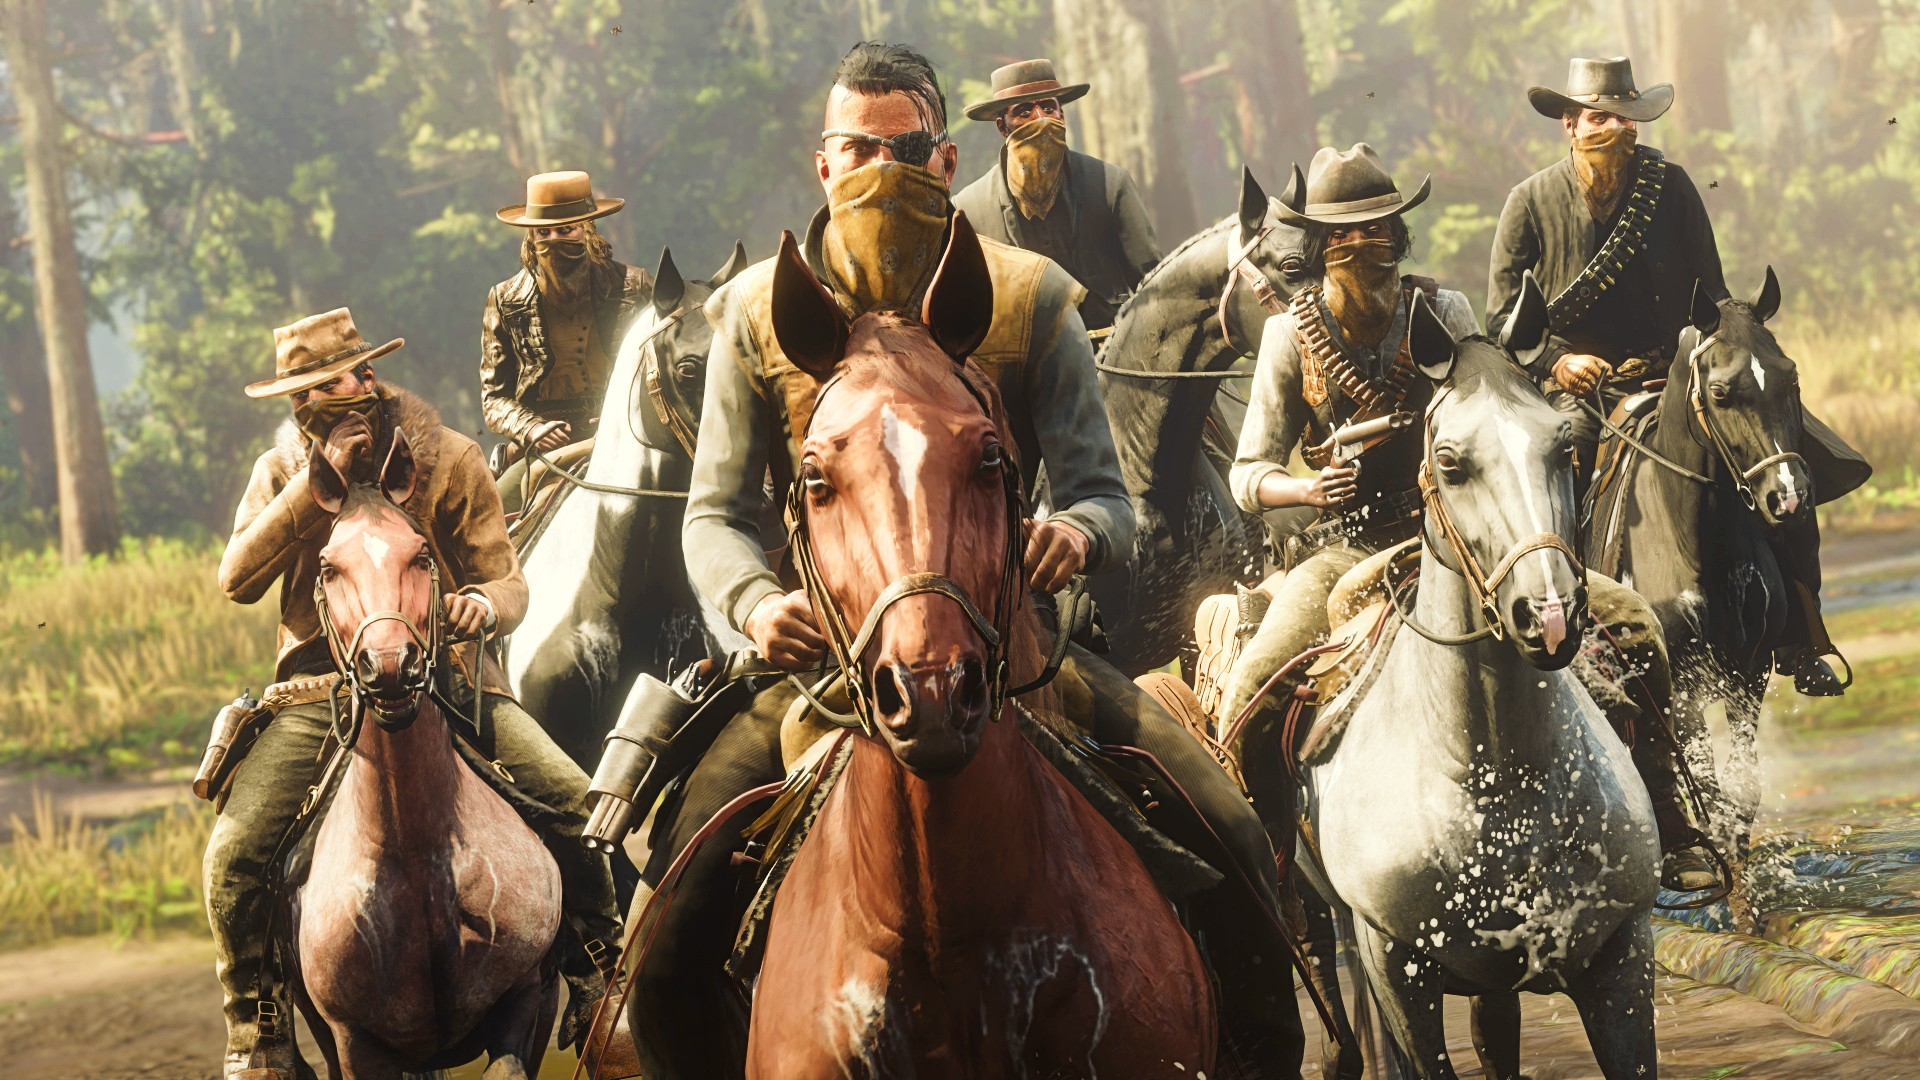 Red Dead Online's new Outlaw Pass has left fans underwhelmed